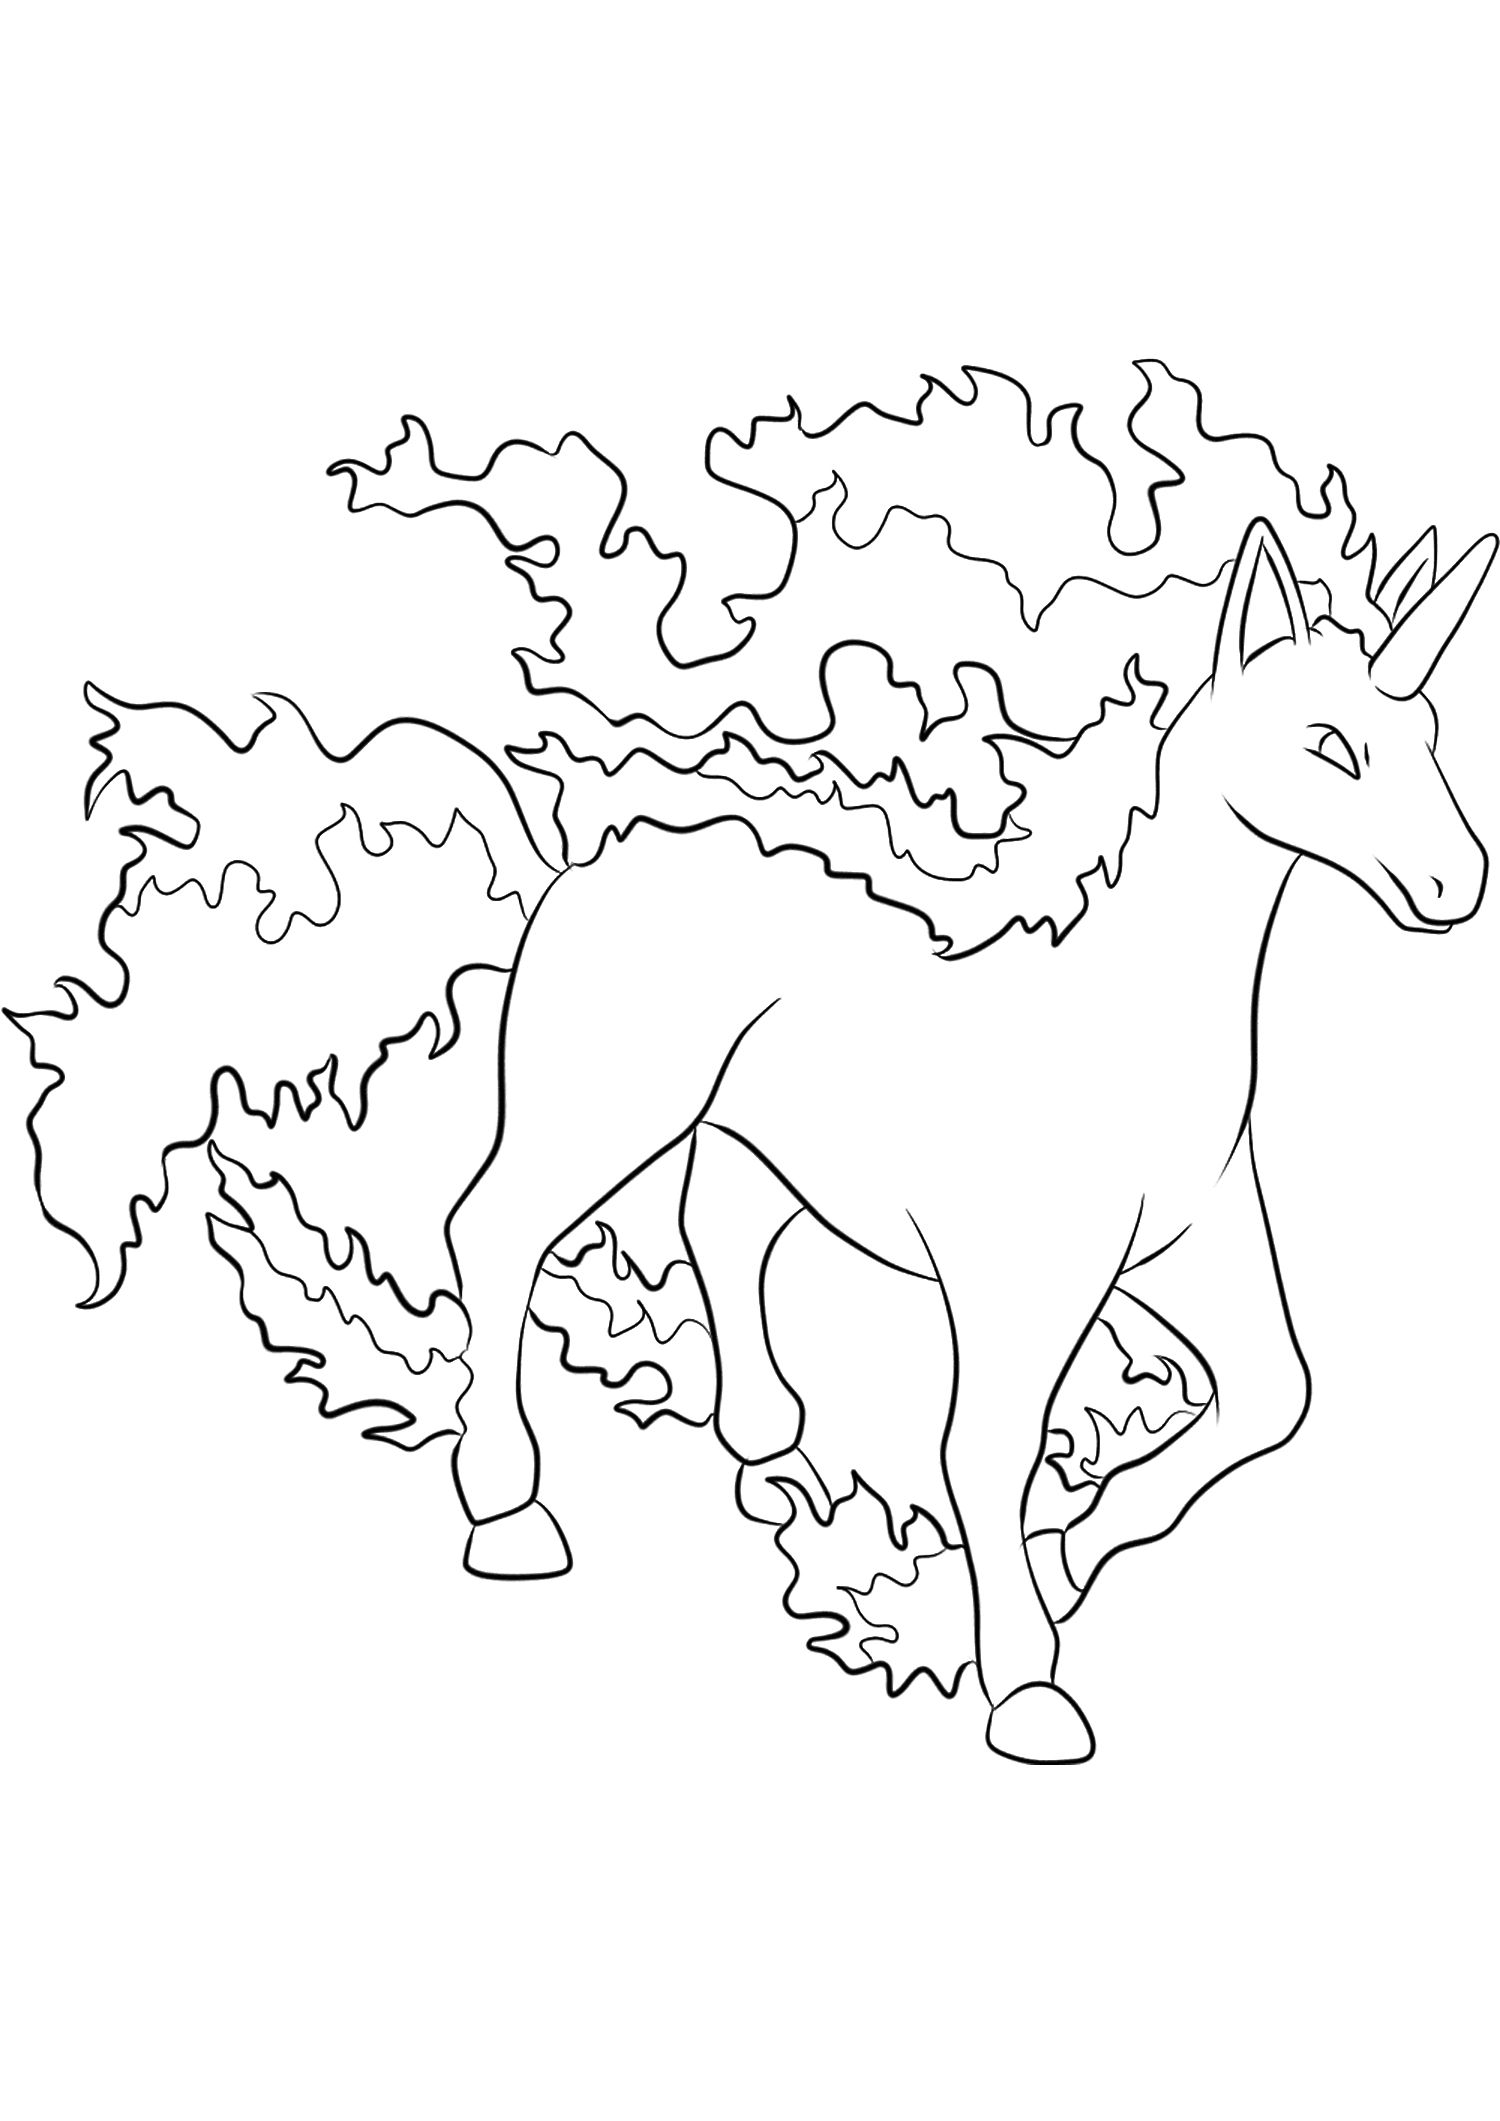 <b>Rapidash</b> (No.78) : Pokemon (Generation I)